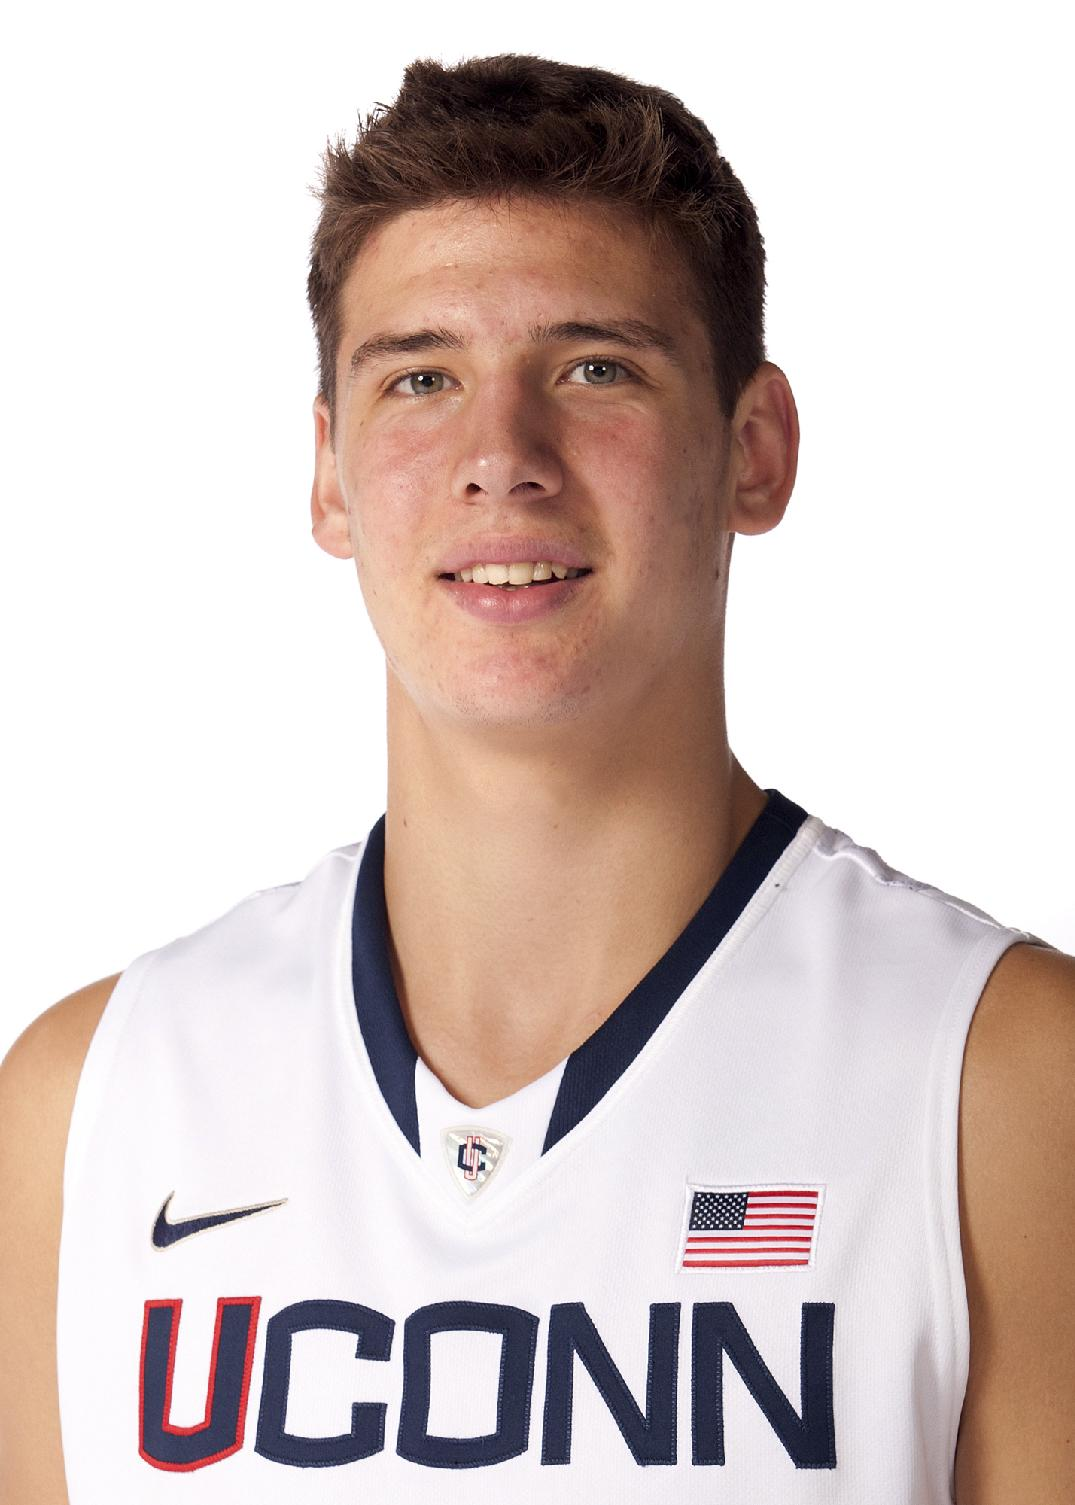 This Sept. 24, 2011 file photo provided by the University of Connecticut Athletic Department shows men's basketball player Tyler Olander. Olander pleaded guilty to driving without a license, Monday, Sept. 23, 2013 in Rockville Superior Court, in Vernon, Conn. He was suspended from the basketball team earlier this month after he was charged with operating under the influence of drugs or alcohol, but tests showed Olander was under the legal limit